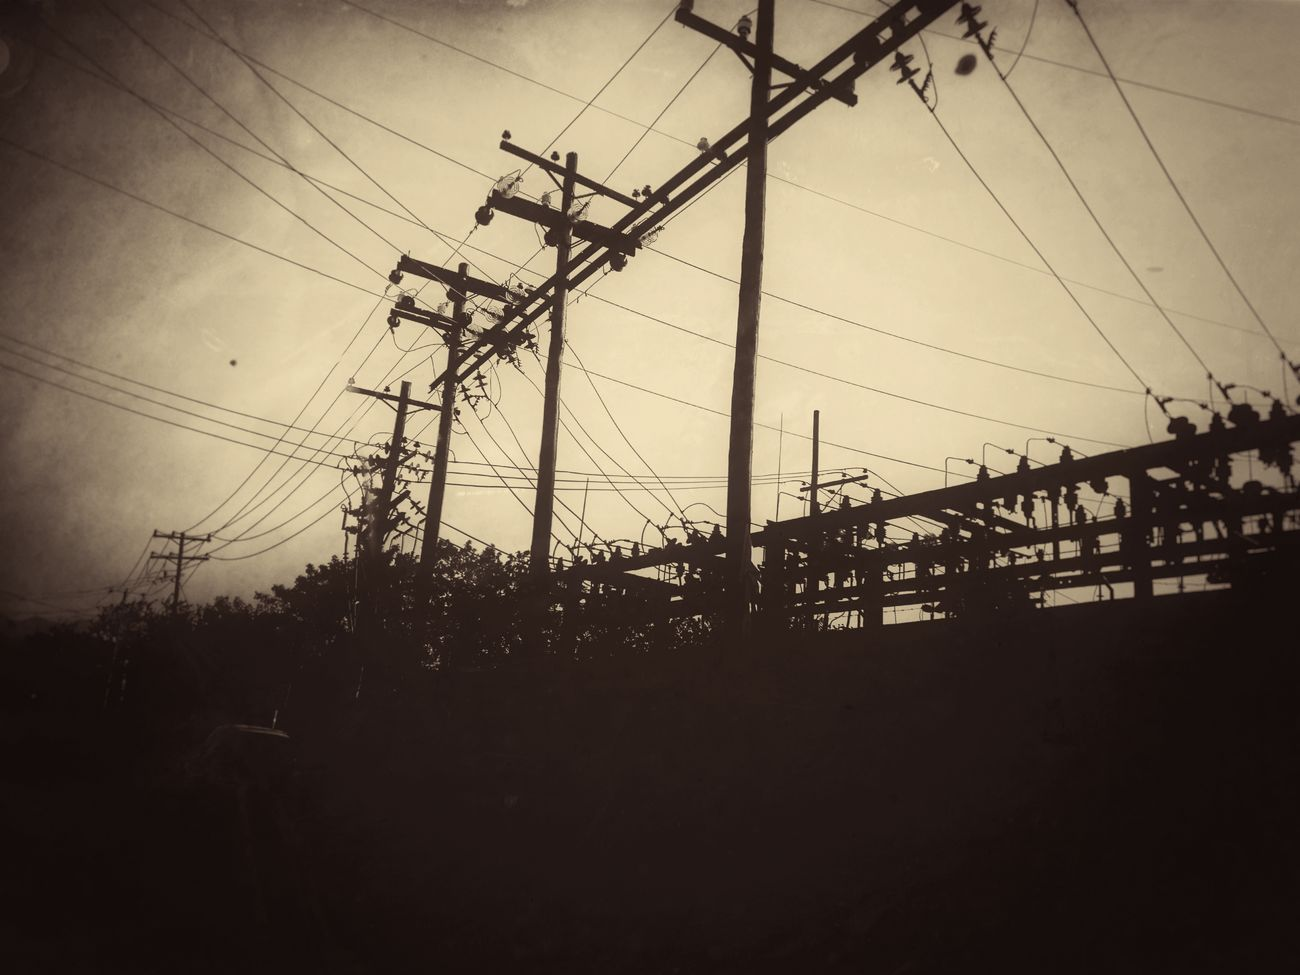 Power Line  Silhouette Industrial Distopic Apocalyptic Gritty Sepia Decadent Pollution Fuel And Power Generation